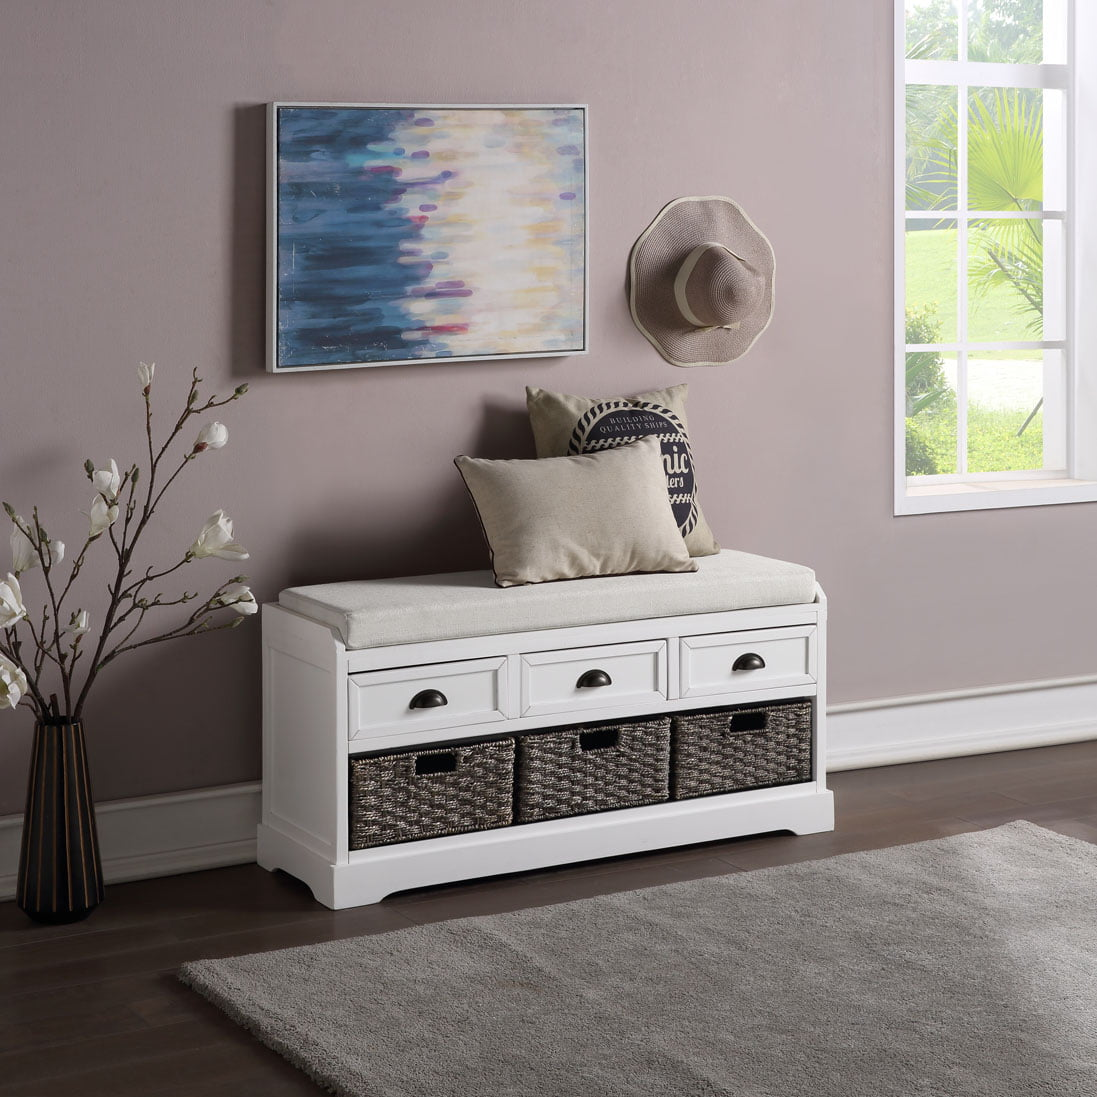 Shoe Storage Bench Entryway Storage Bench With Shoe Rack Drawers Wooden Entryway Foyer Bedroom End Of Bed Bench W Seating Cushions Hallway Shoe Footstool Ottoman 20 2 X44 X13 7 White A1254 Walmart Com Walmart Com